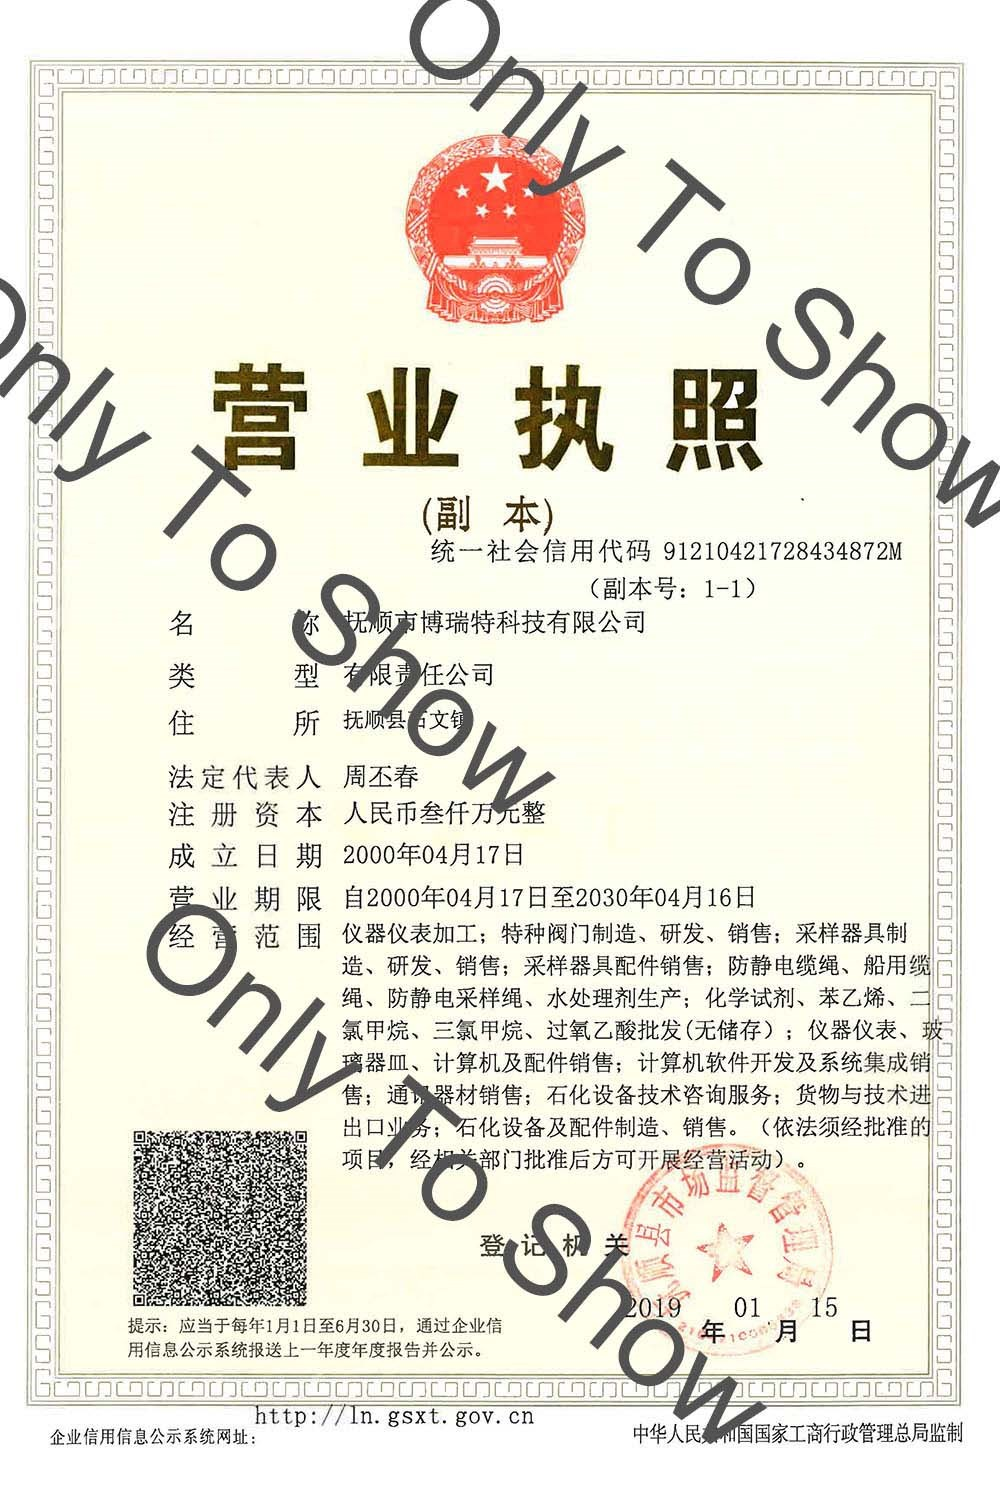 Business License of Industrial and Commercial Bureau